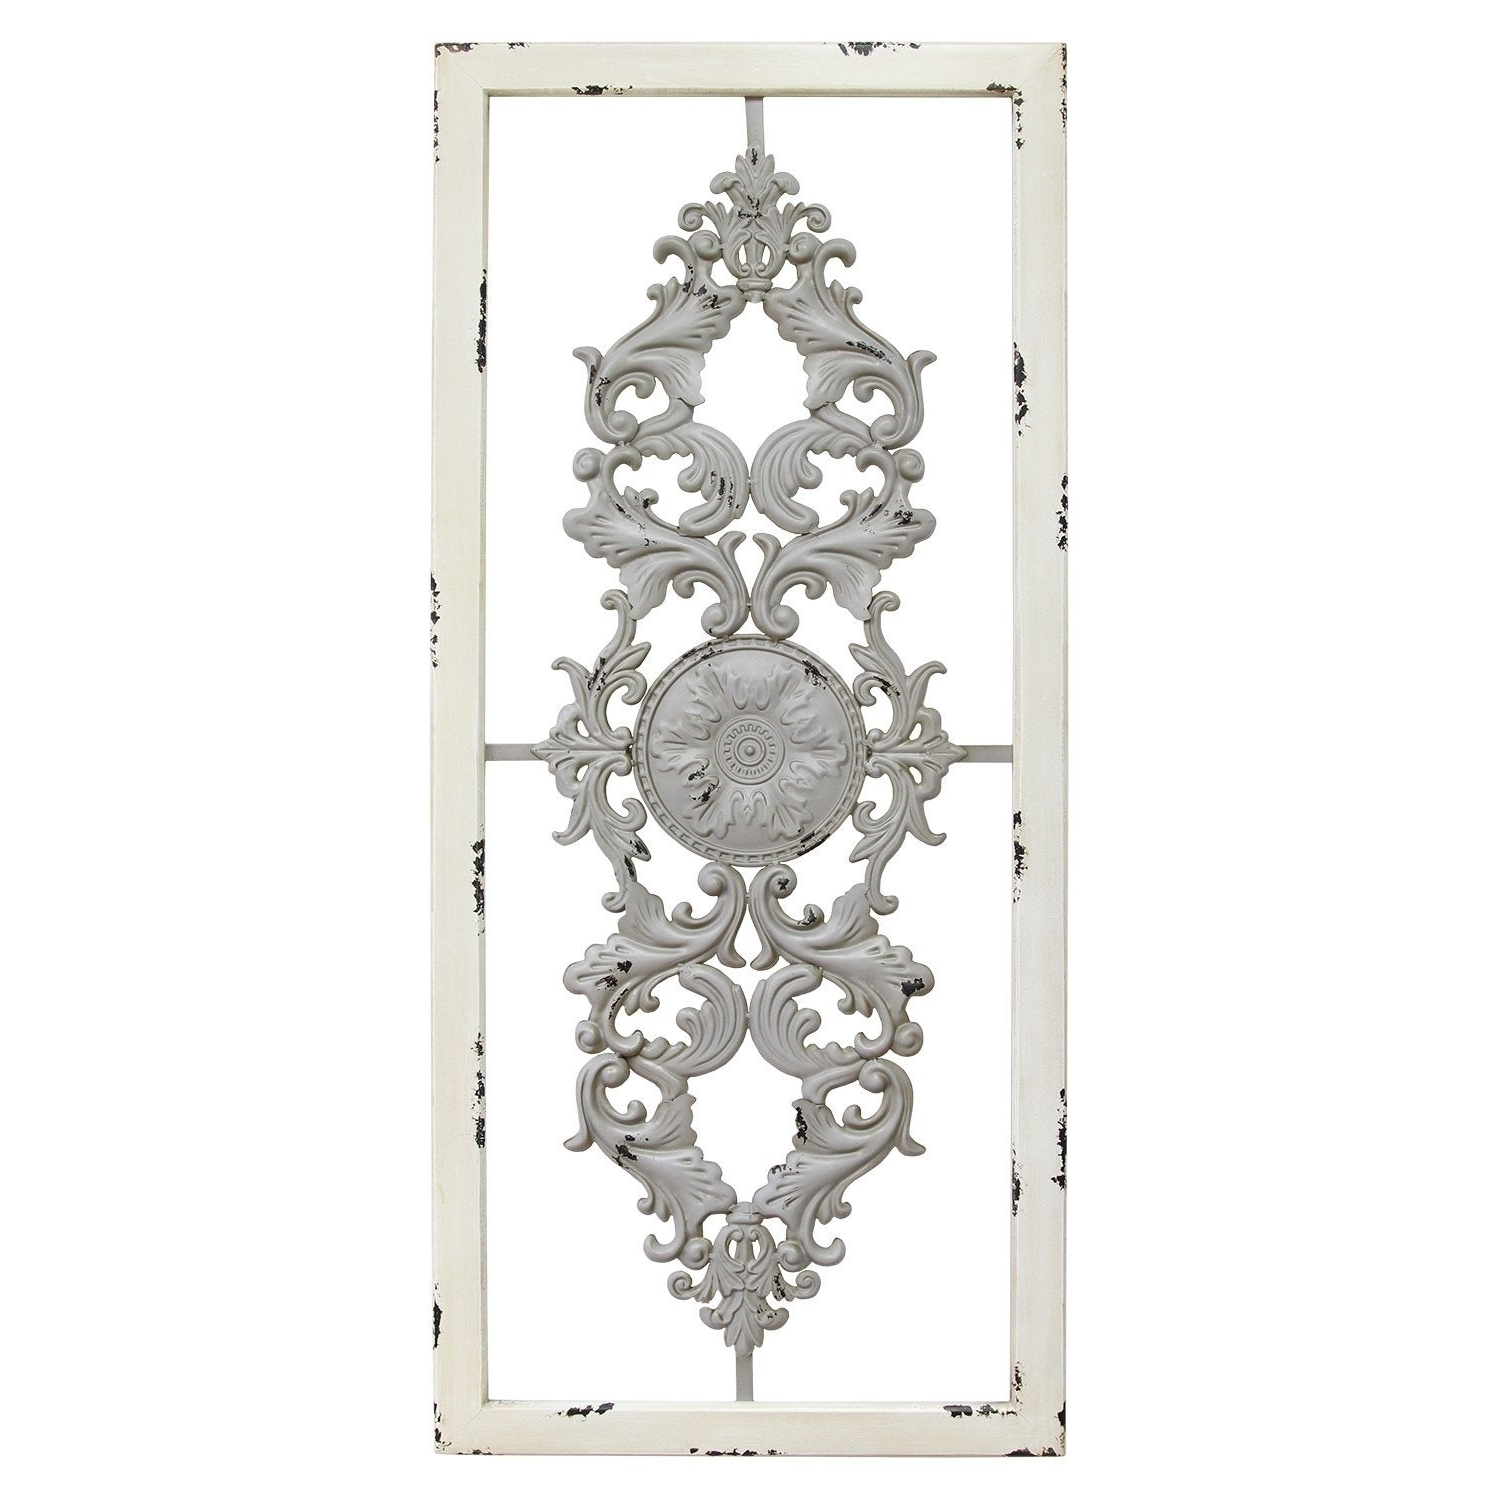 Ornate Scroll Wall Decor With Preferred Ornate Scroll Panel Grey Wall Decor White Frame 36x16 Metal Wood (View 8 of 20)